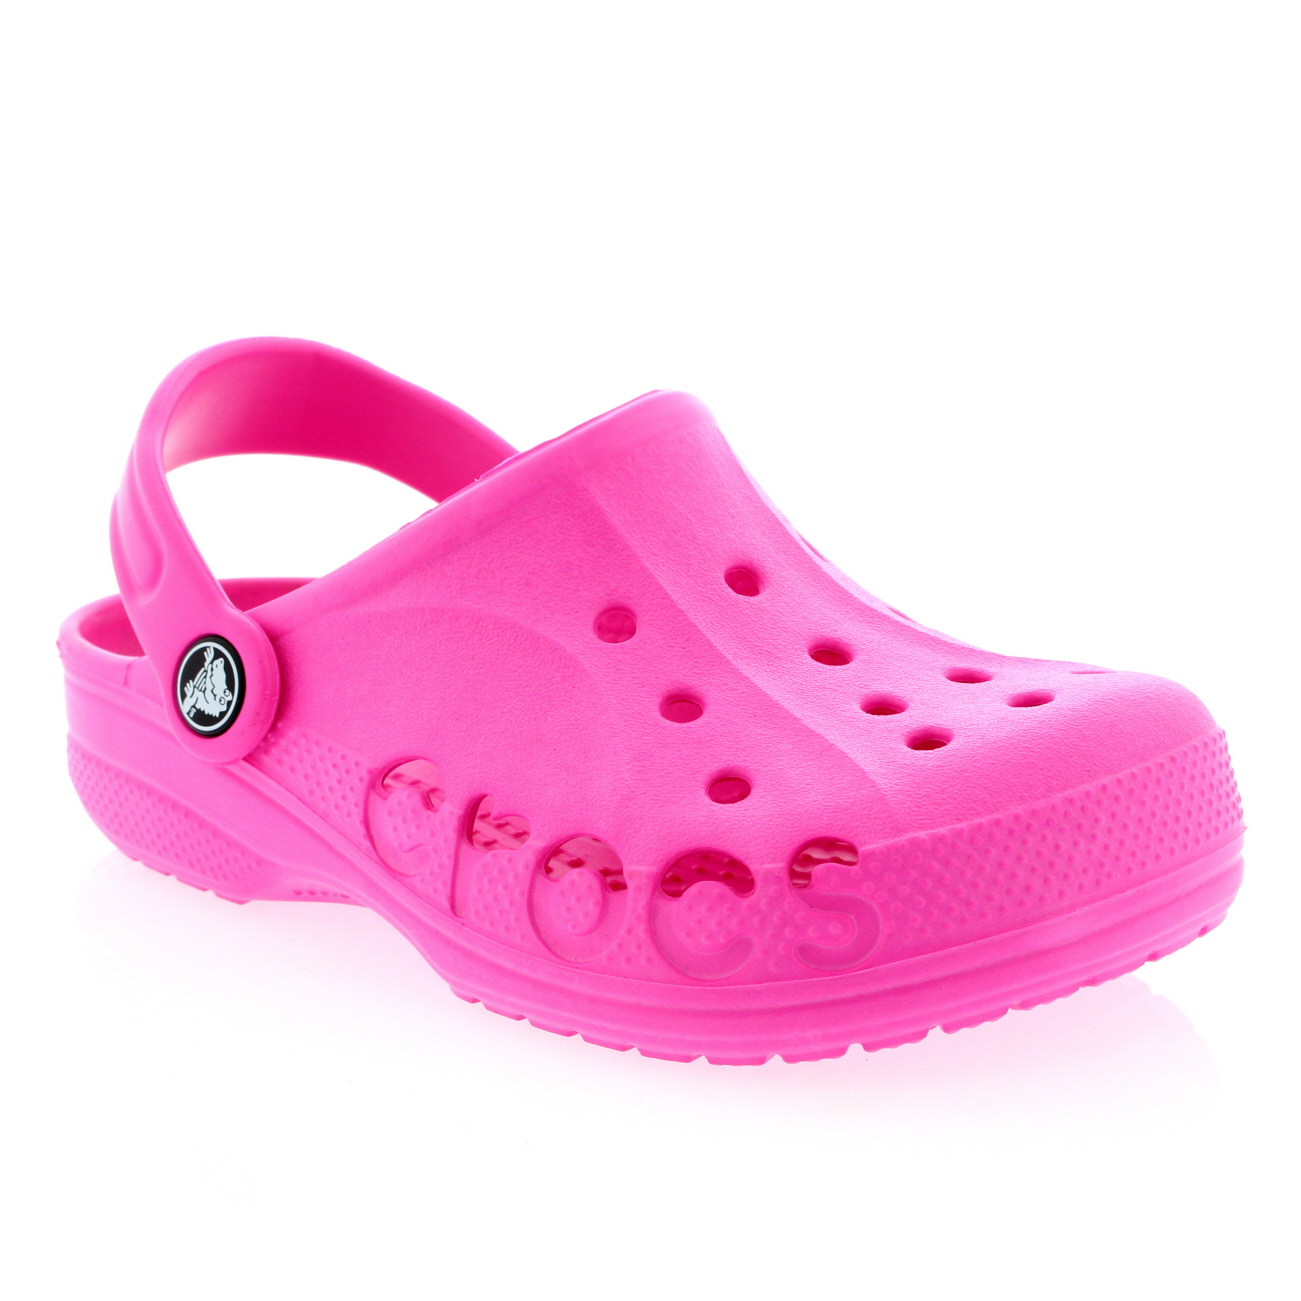 Unisex Kids Junior Crocs Baya